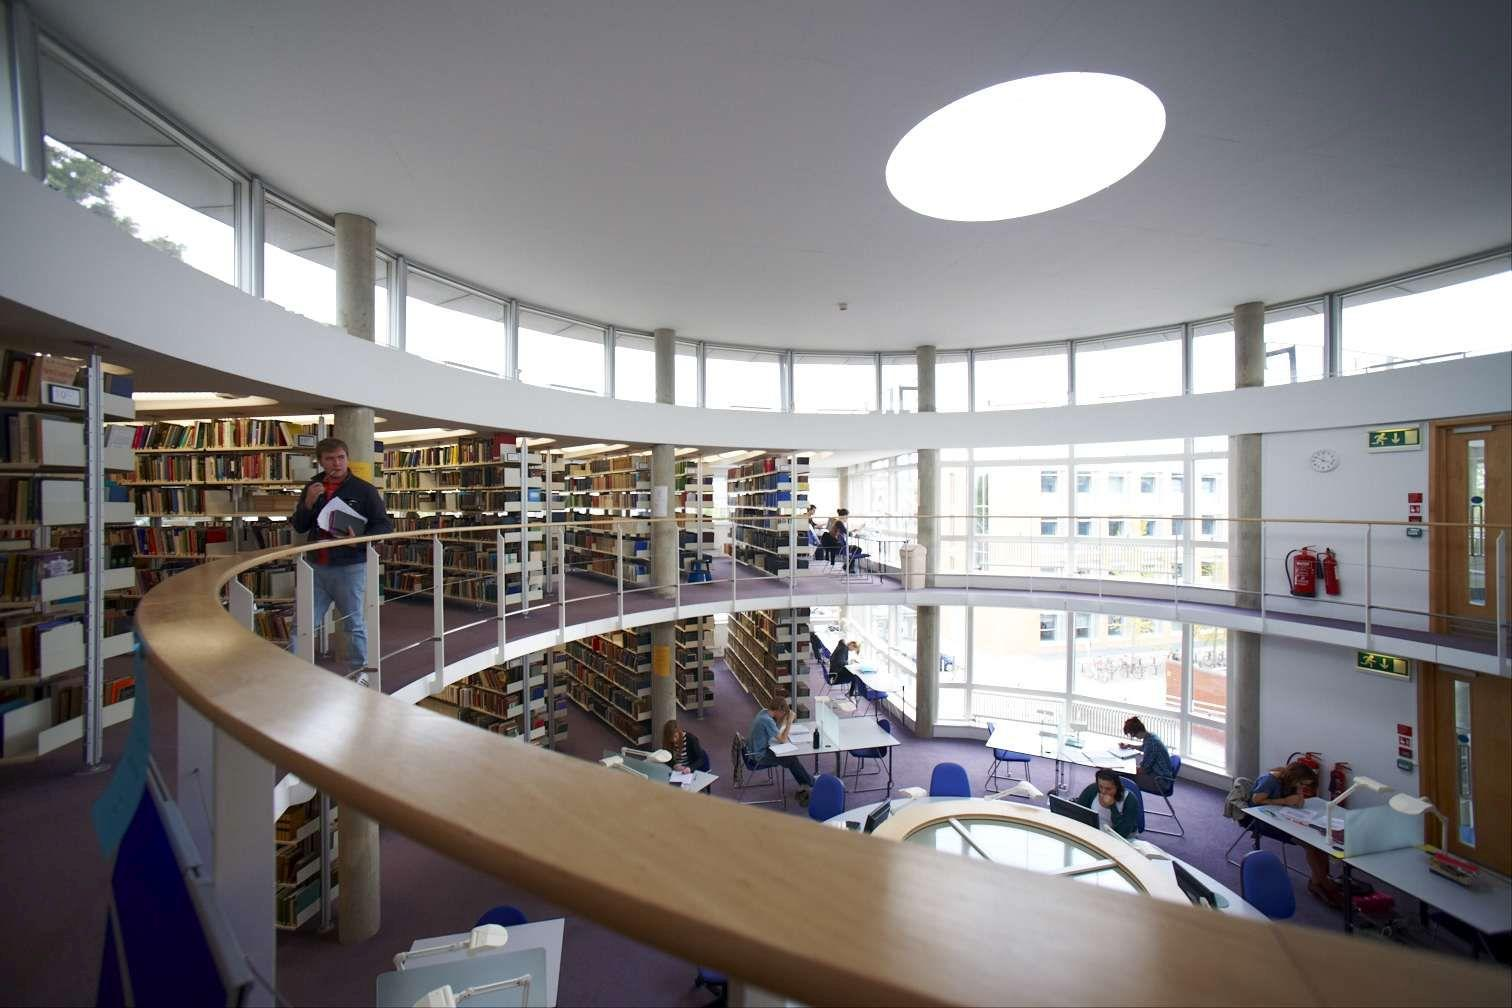 Photograph of Divinity Library